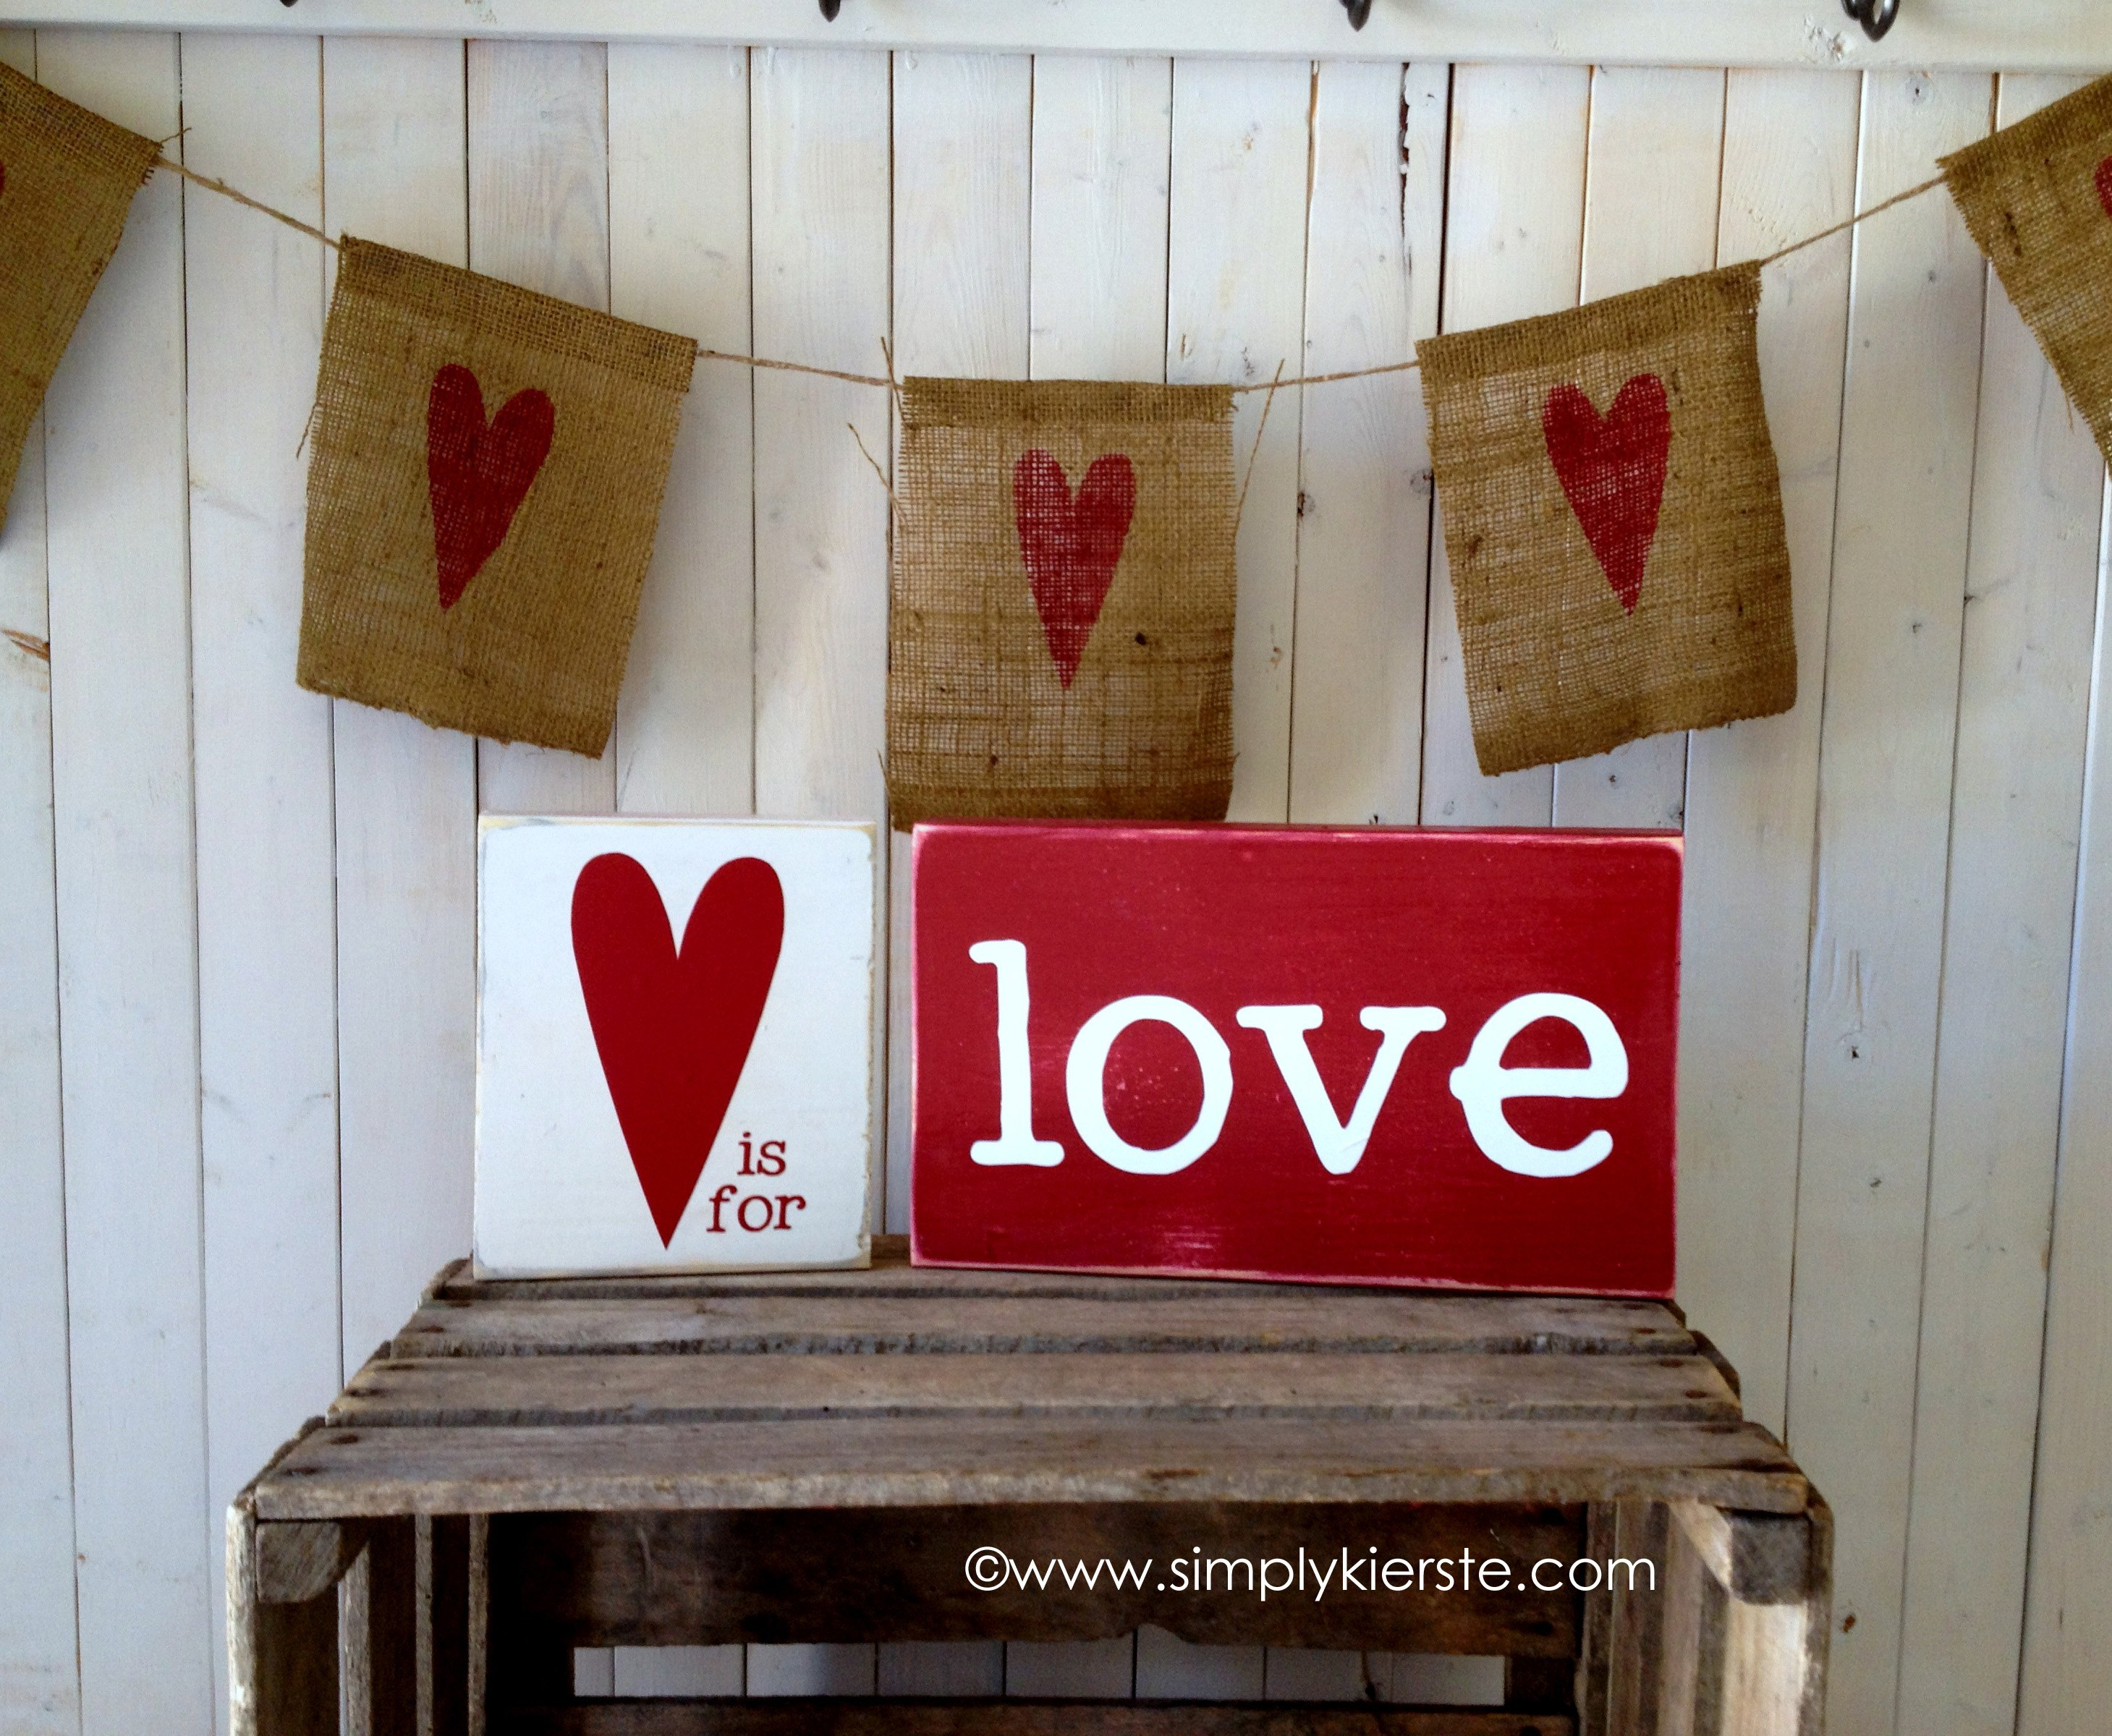 {♥ is for…love blocks}